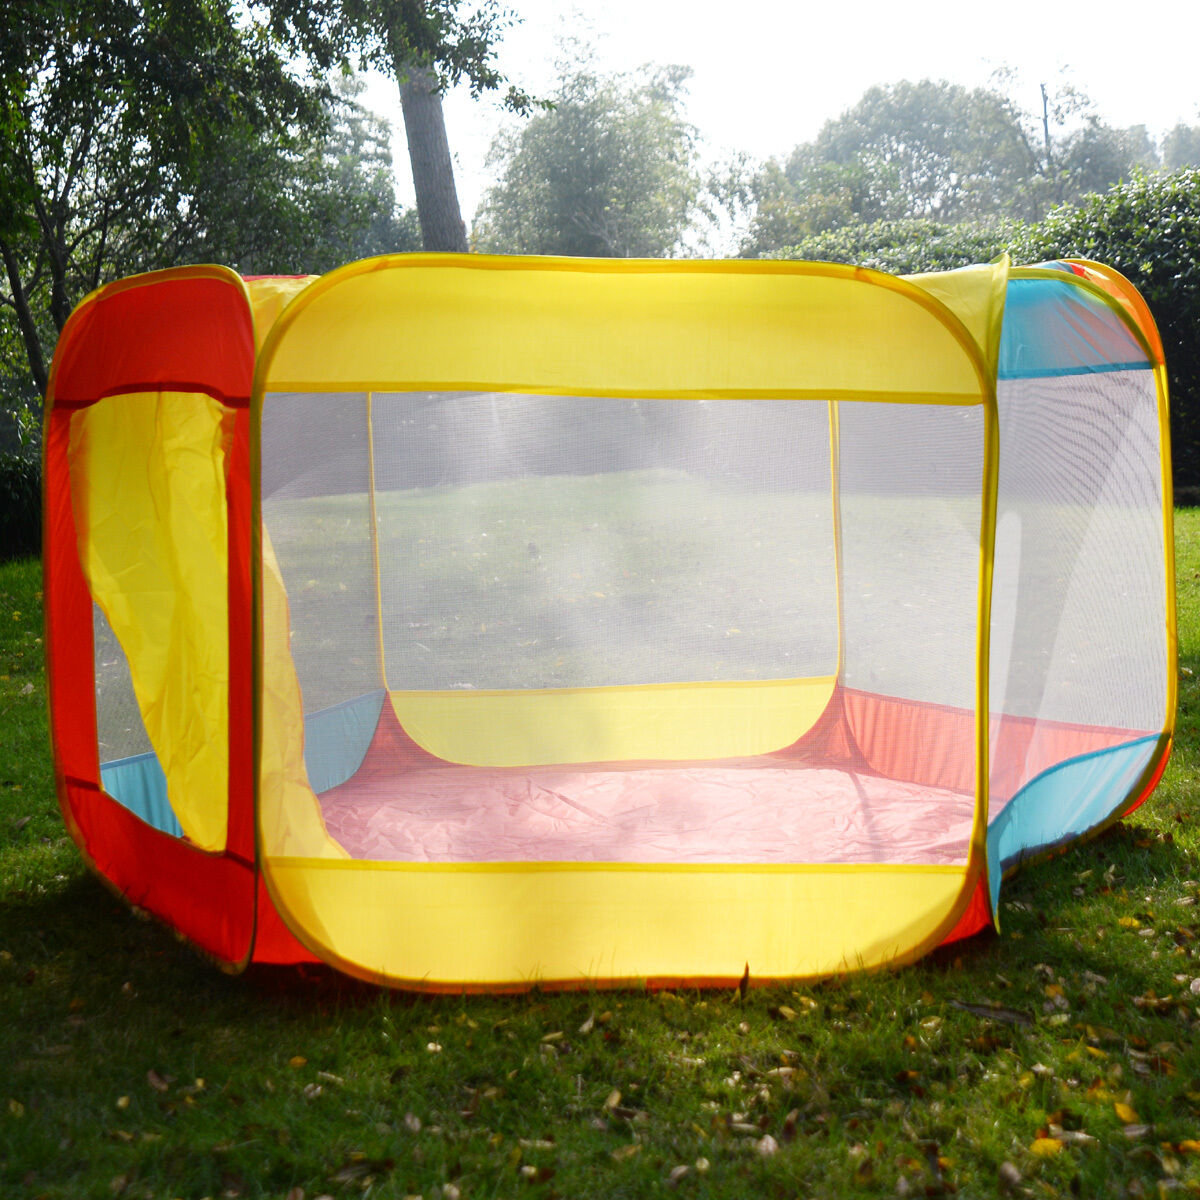 Folding Portable Playpen Baby Play Yard With Travel Bag Indoor Outdoor  Safety | Shopping Ebay With Delivery To Moldova